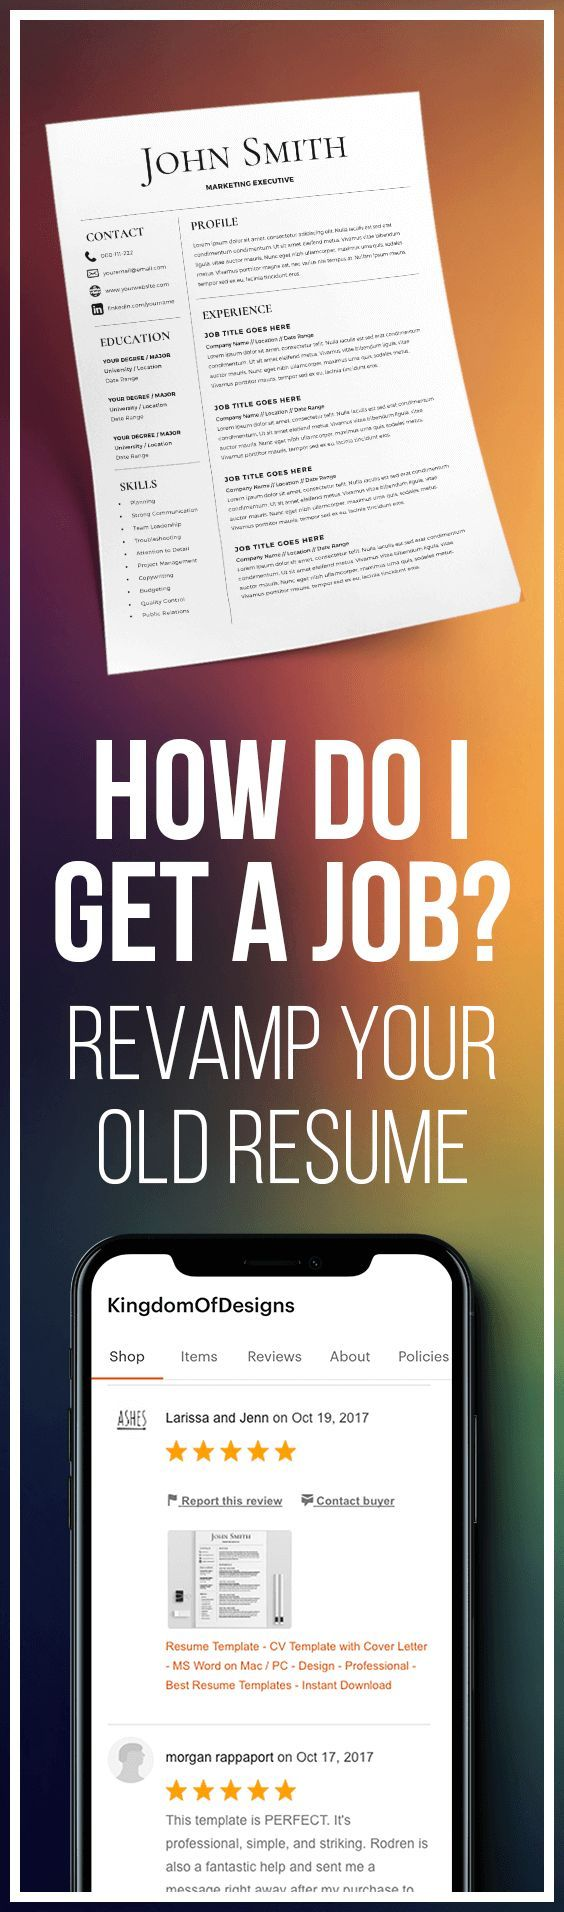 How Do I Get a Job? Resume Template - CV Template - Free Cover ...